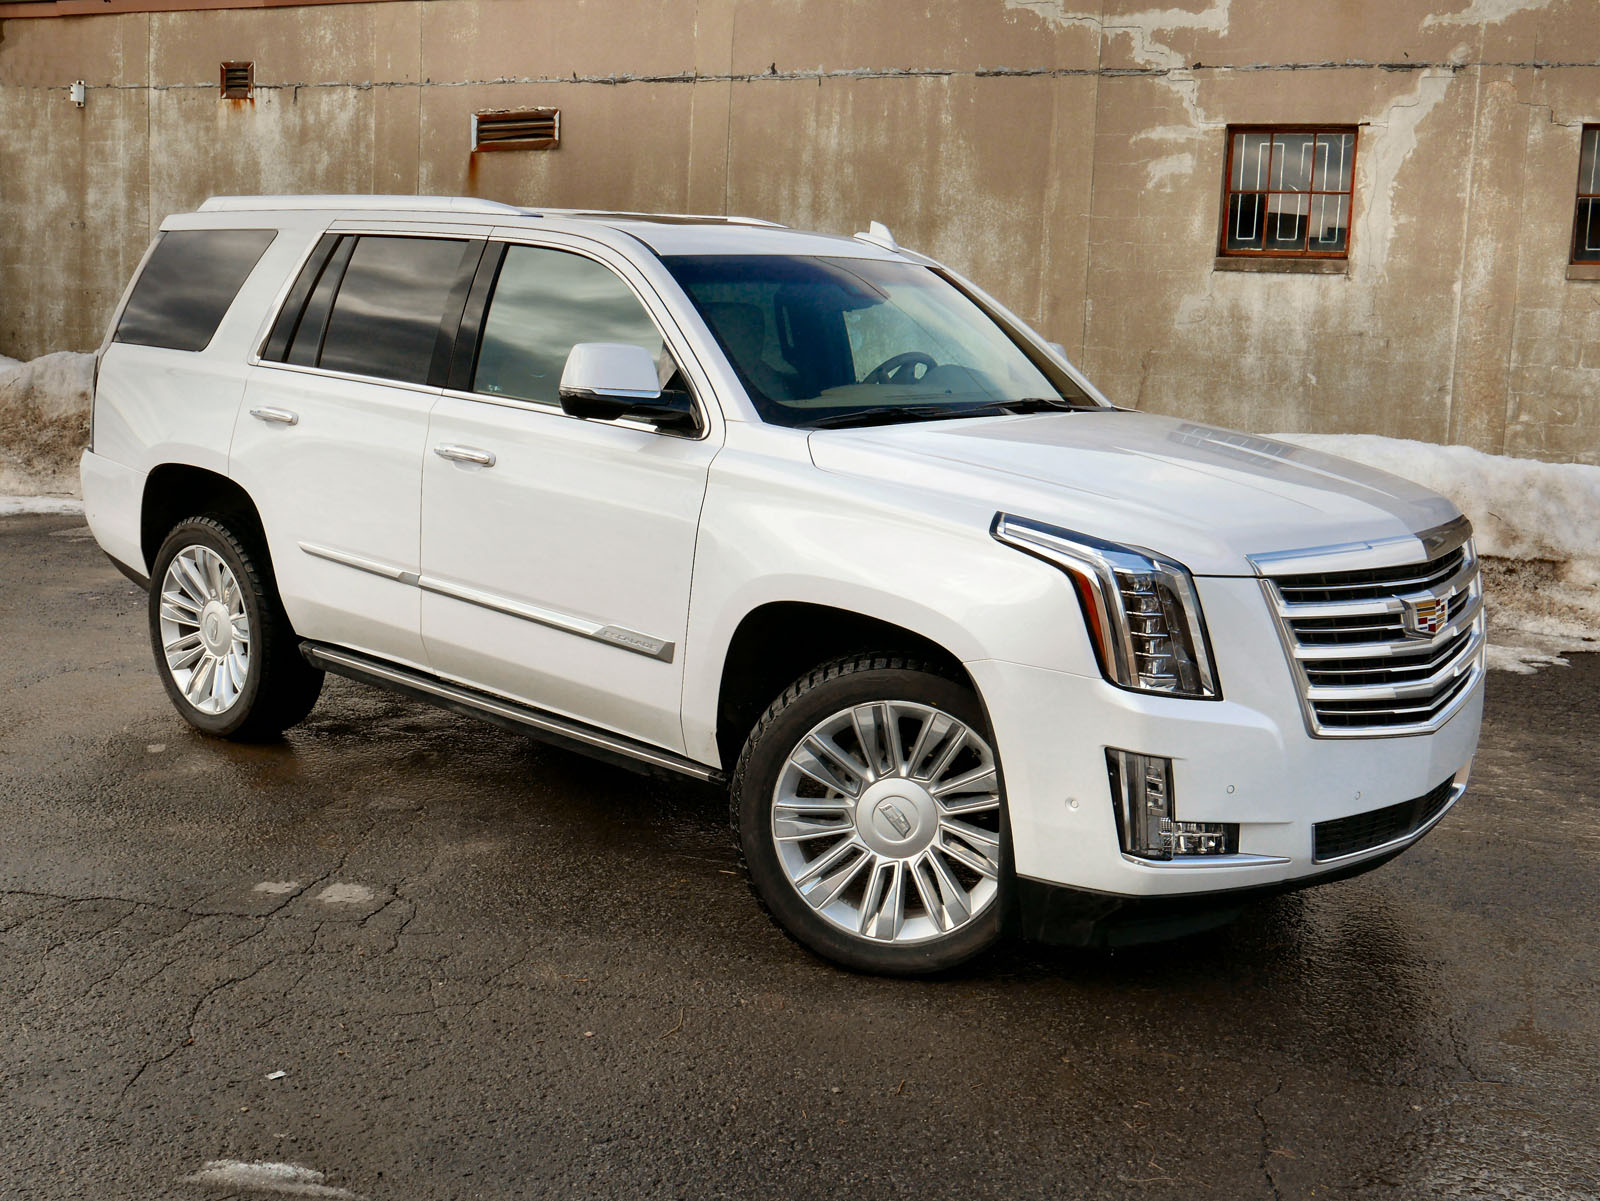 2018 Cadillac Escalade Review - AutoGuide.com